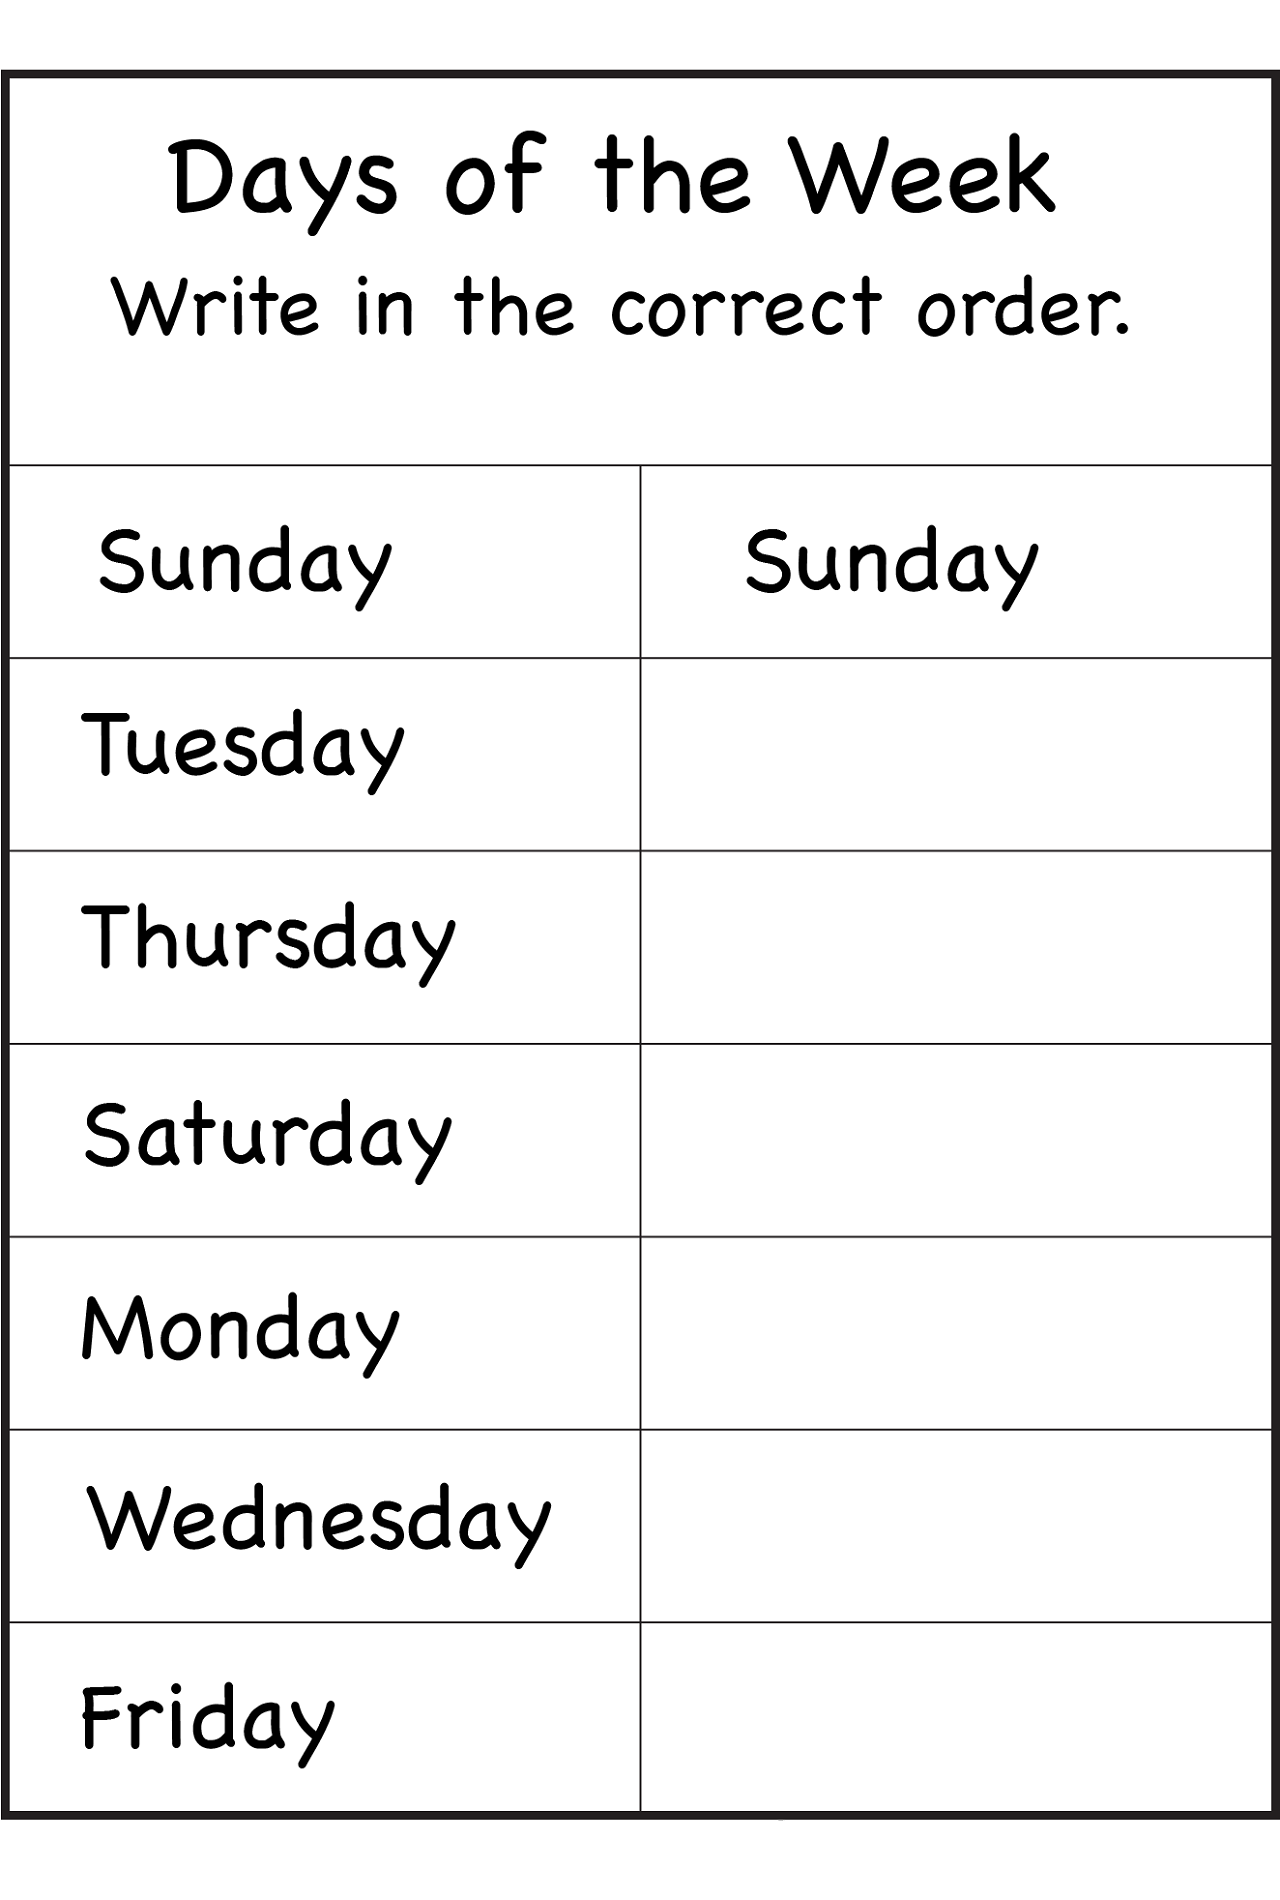 Free Days Of The Week Worksheet Order on missing number worksheets